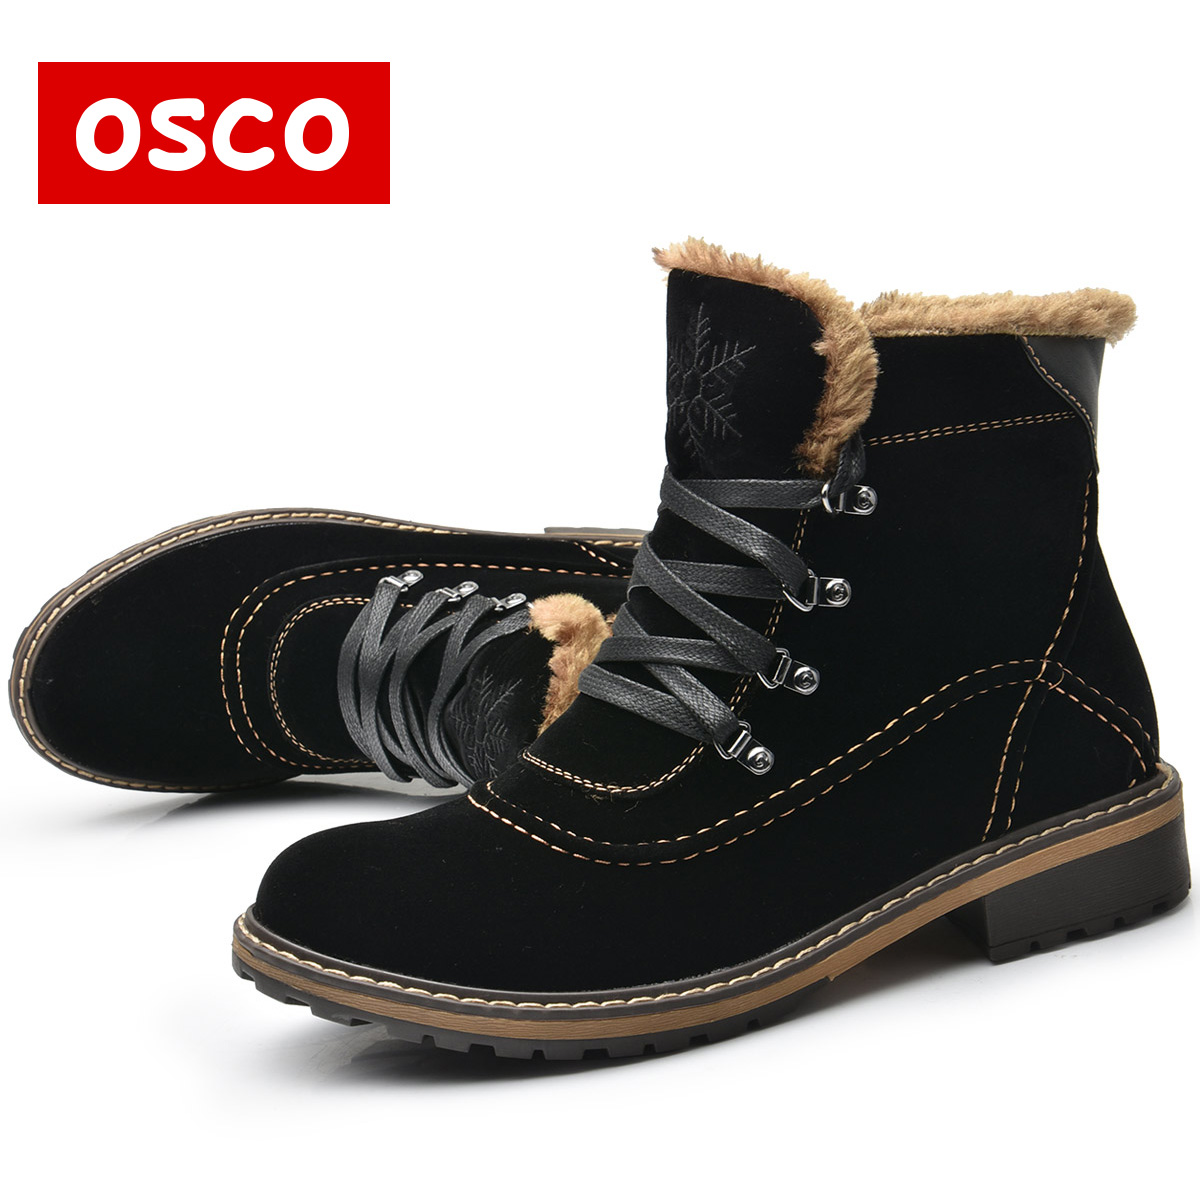 OSCO Brand Women Boots Female Winter Shoes Woman Warm Snow Boots Fashion Suede Fur Ankle Boots Black Brown Size 35-40(China (Mainland))